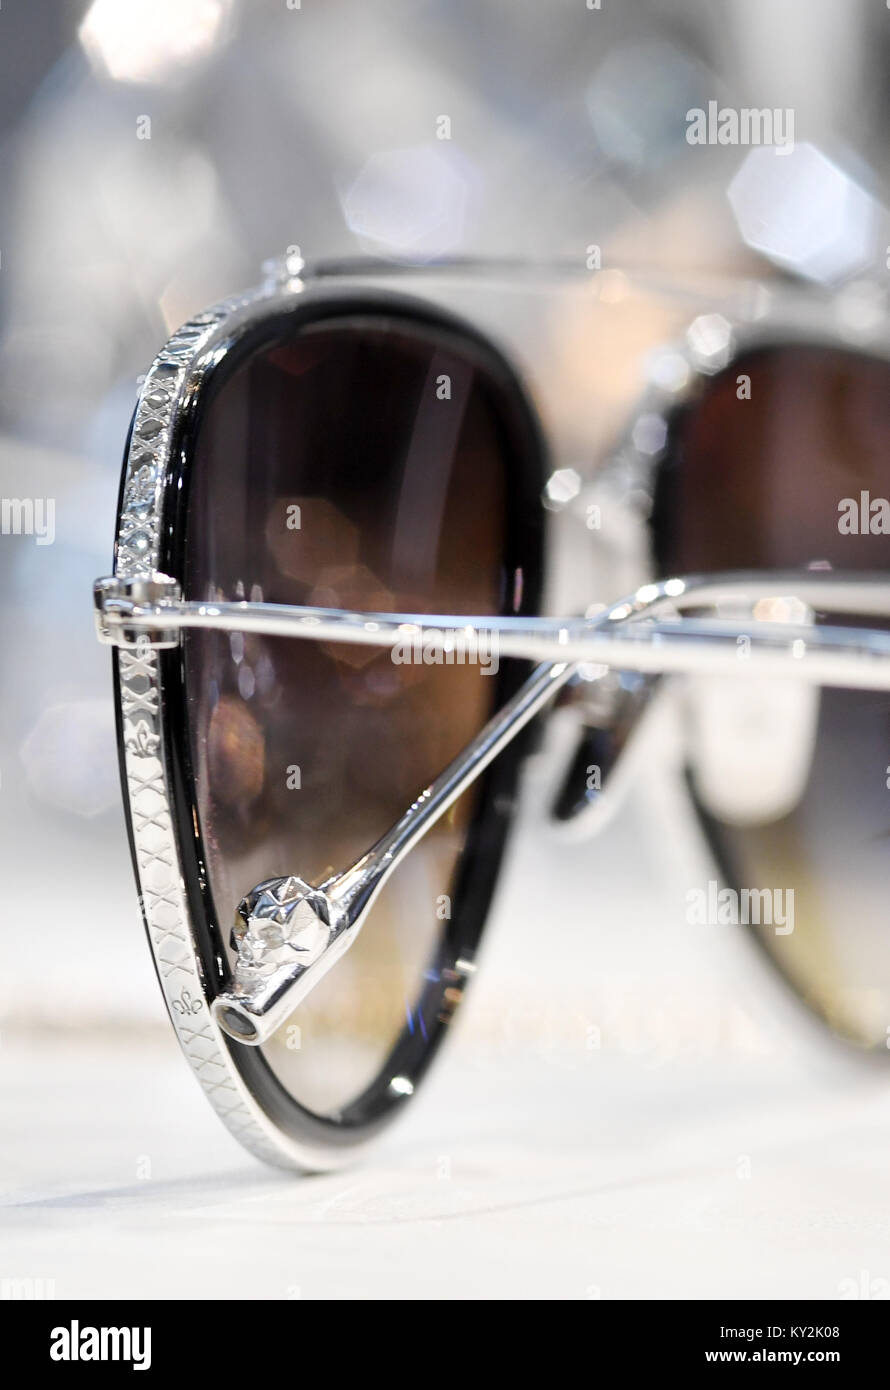 Munich, Germany. 12th Jan, 2018. A limited pair of luxury glasses, with a black diamond on the end of the frames, Stock Photo